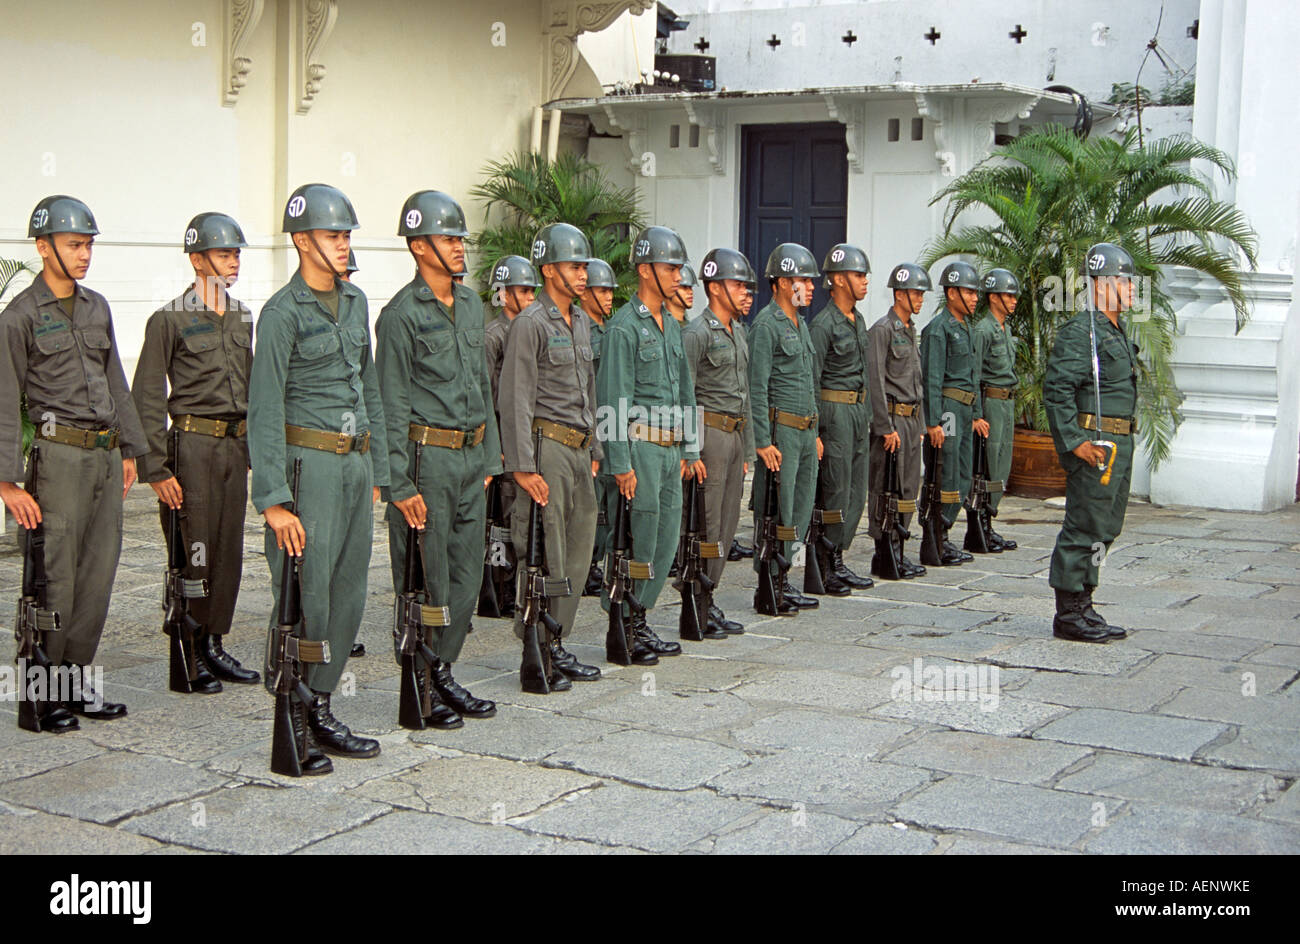 Soldiers standing to attention during changing of the guard, Grand Palace, Bangkok, Thailand Stock Photo